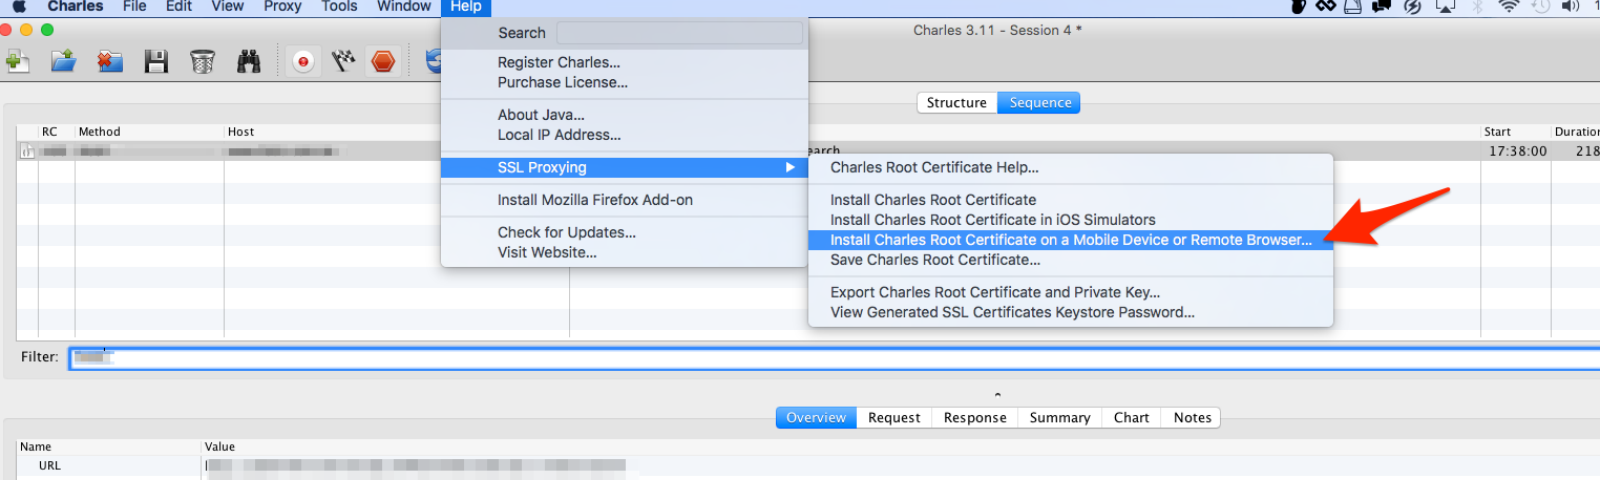 Android How To Use Charles On Mac Os X To Catch Android Packet